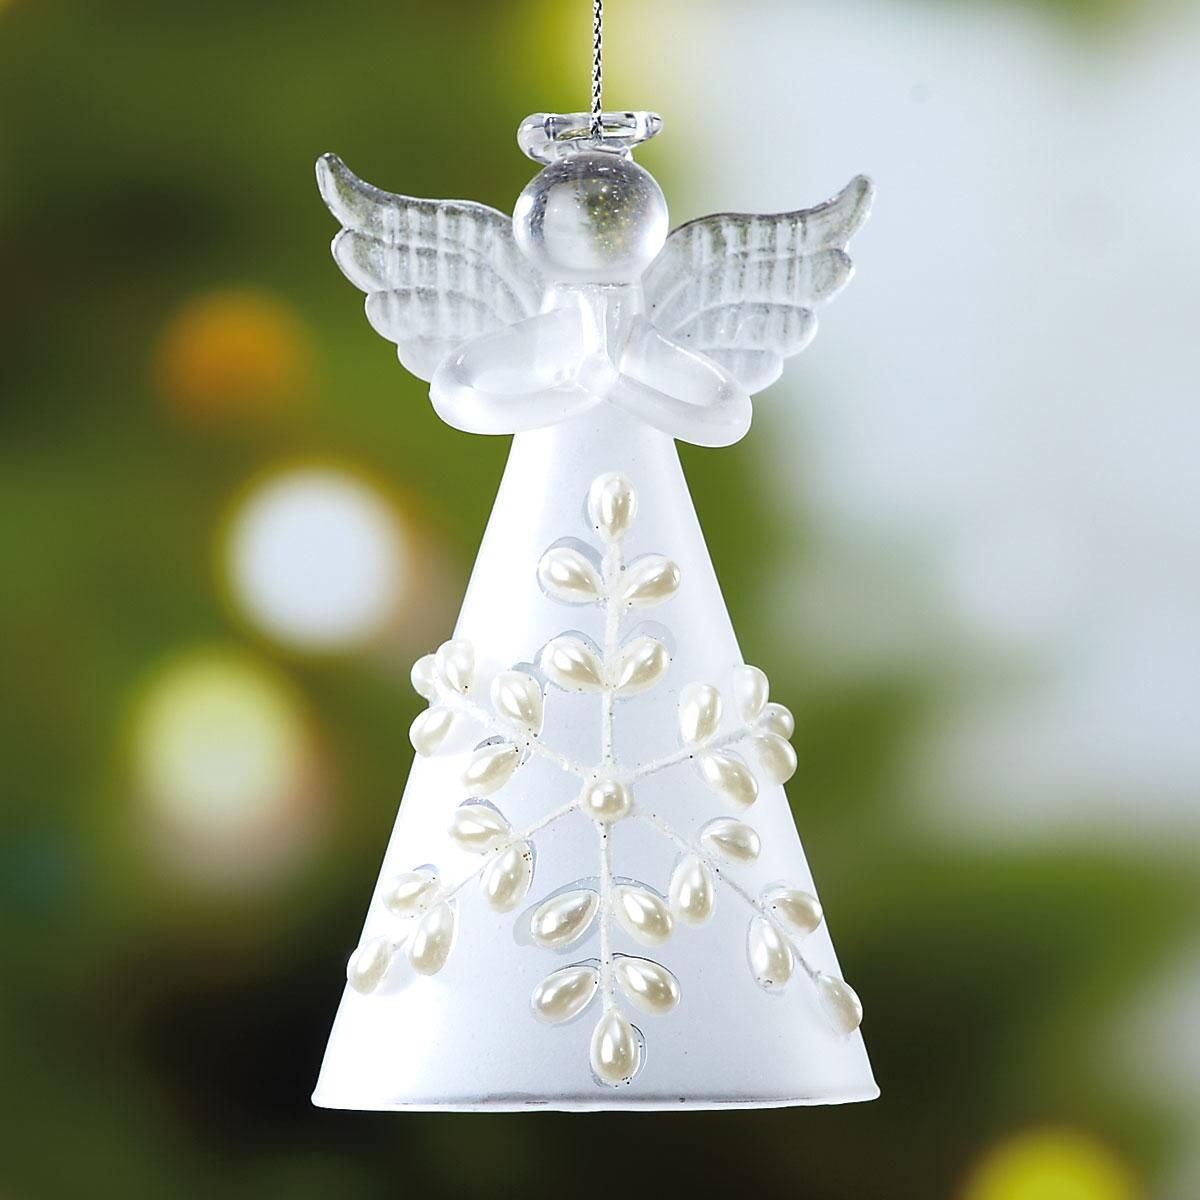 Glass Snow Angel Ornament Buy 1, get 1 Free!